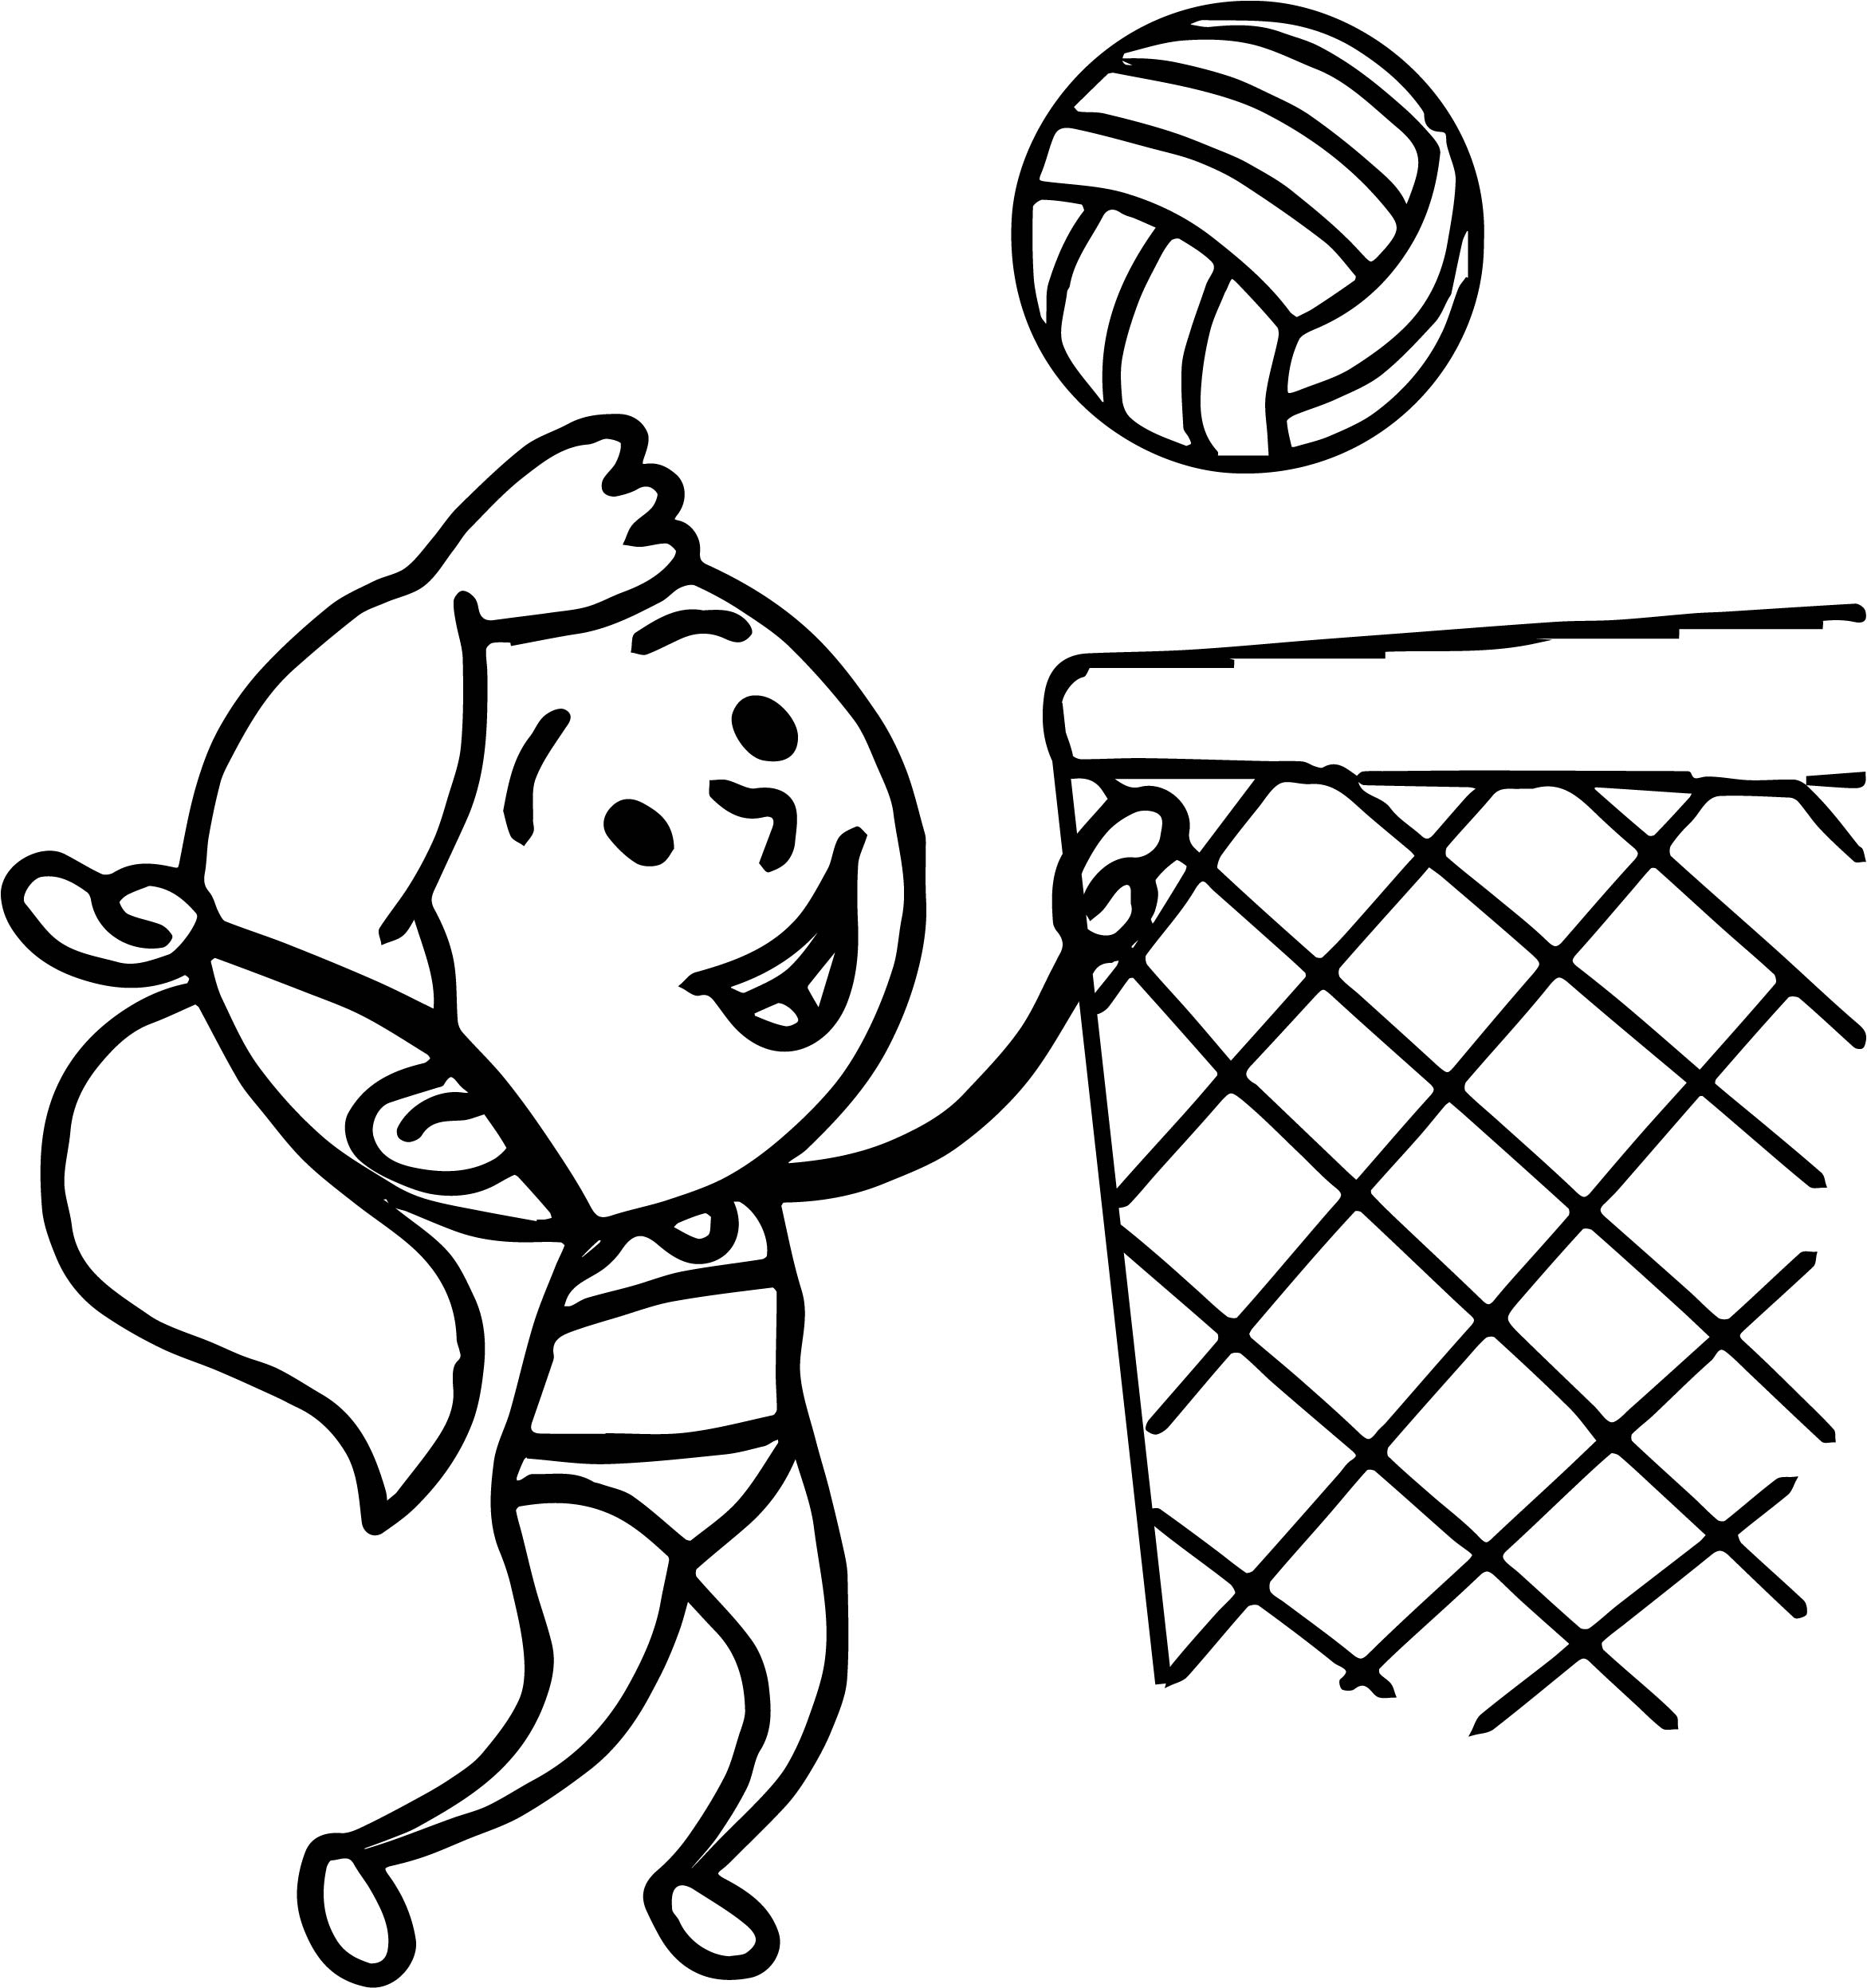 volleyball net coloring pages - photo#12